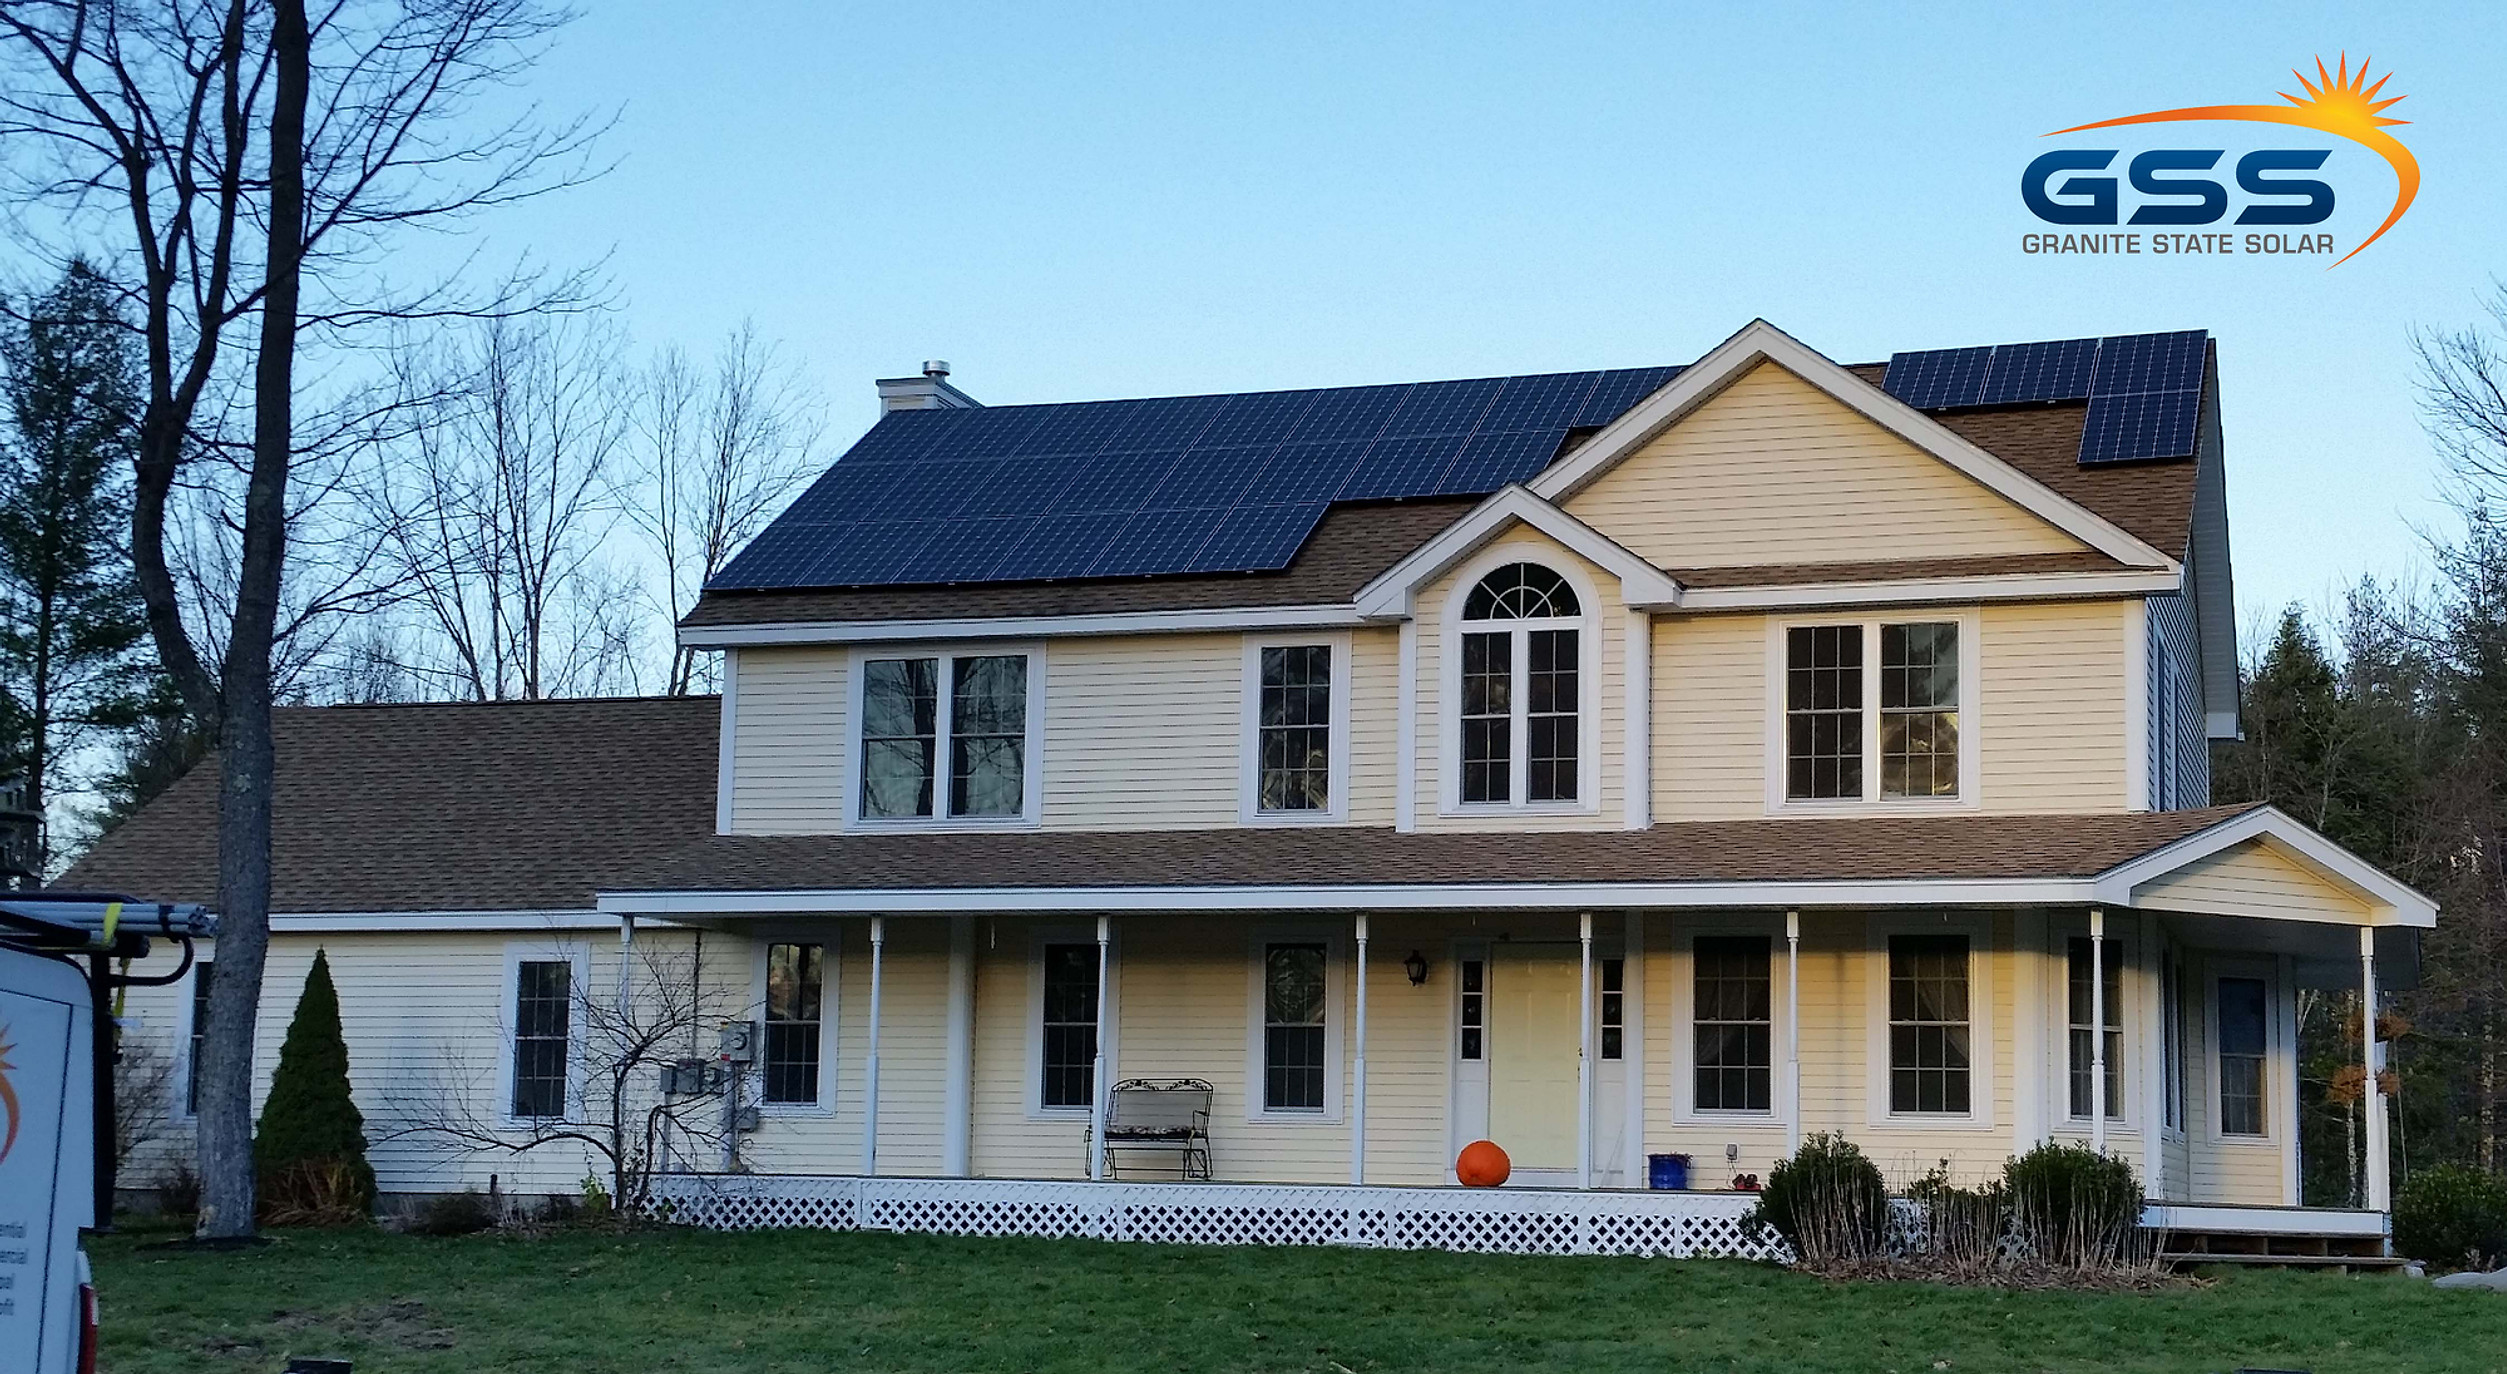 27 solar panels on a roof